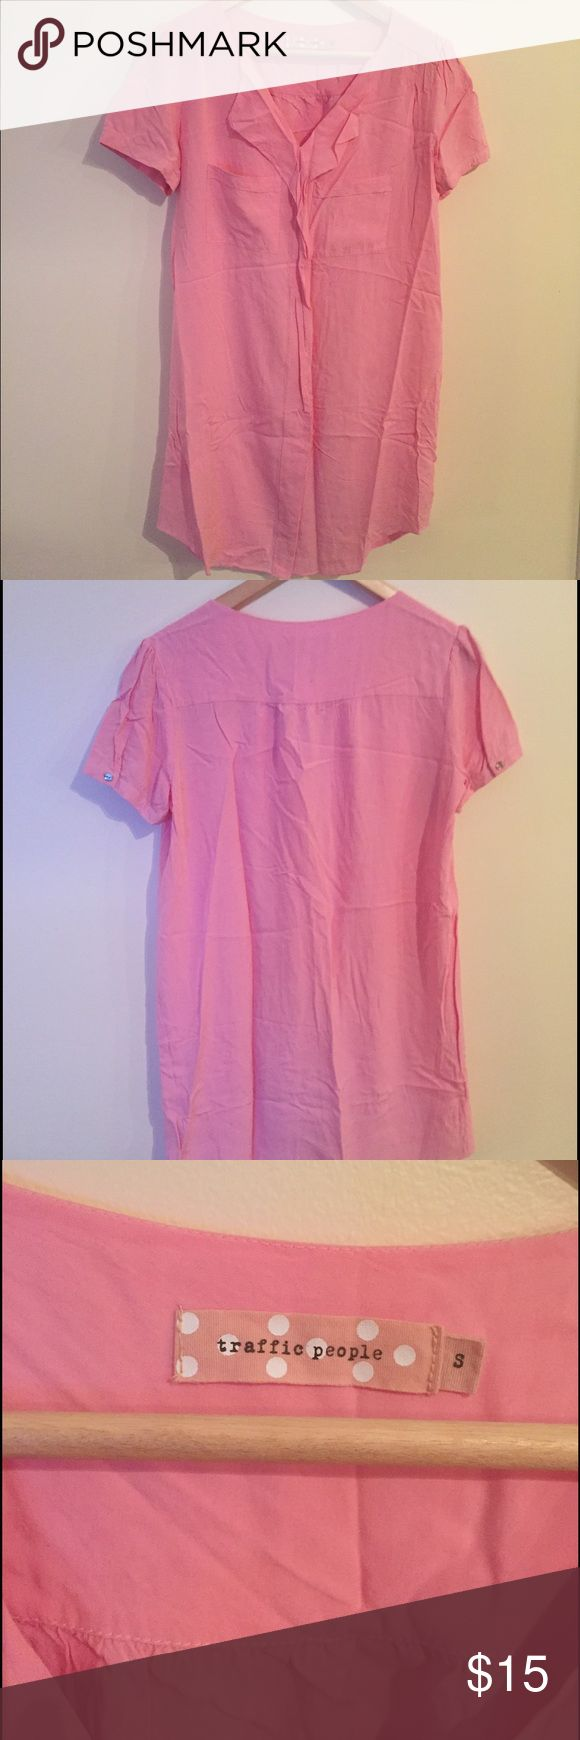 Pink ruffle front ASOS shirt dress Good used condition, pink shirt dress from ASOS. Brand is Traffic People. ASOS Dresses Mini